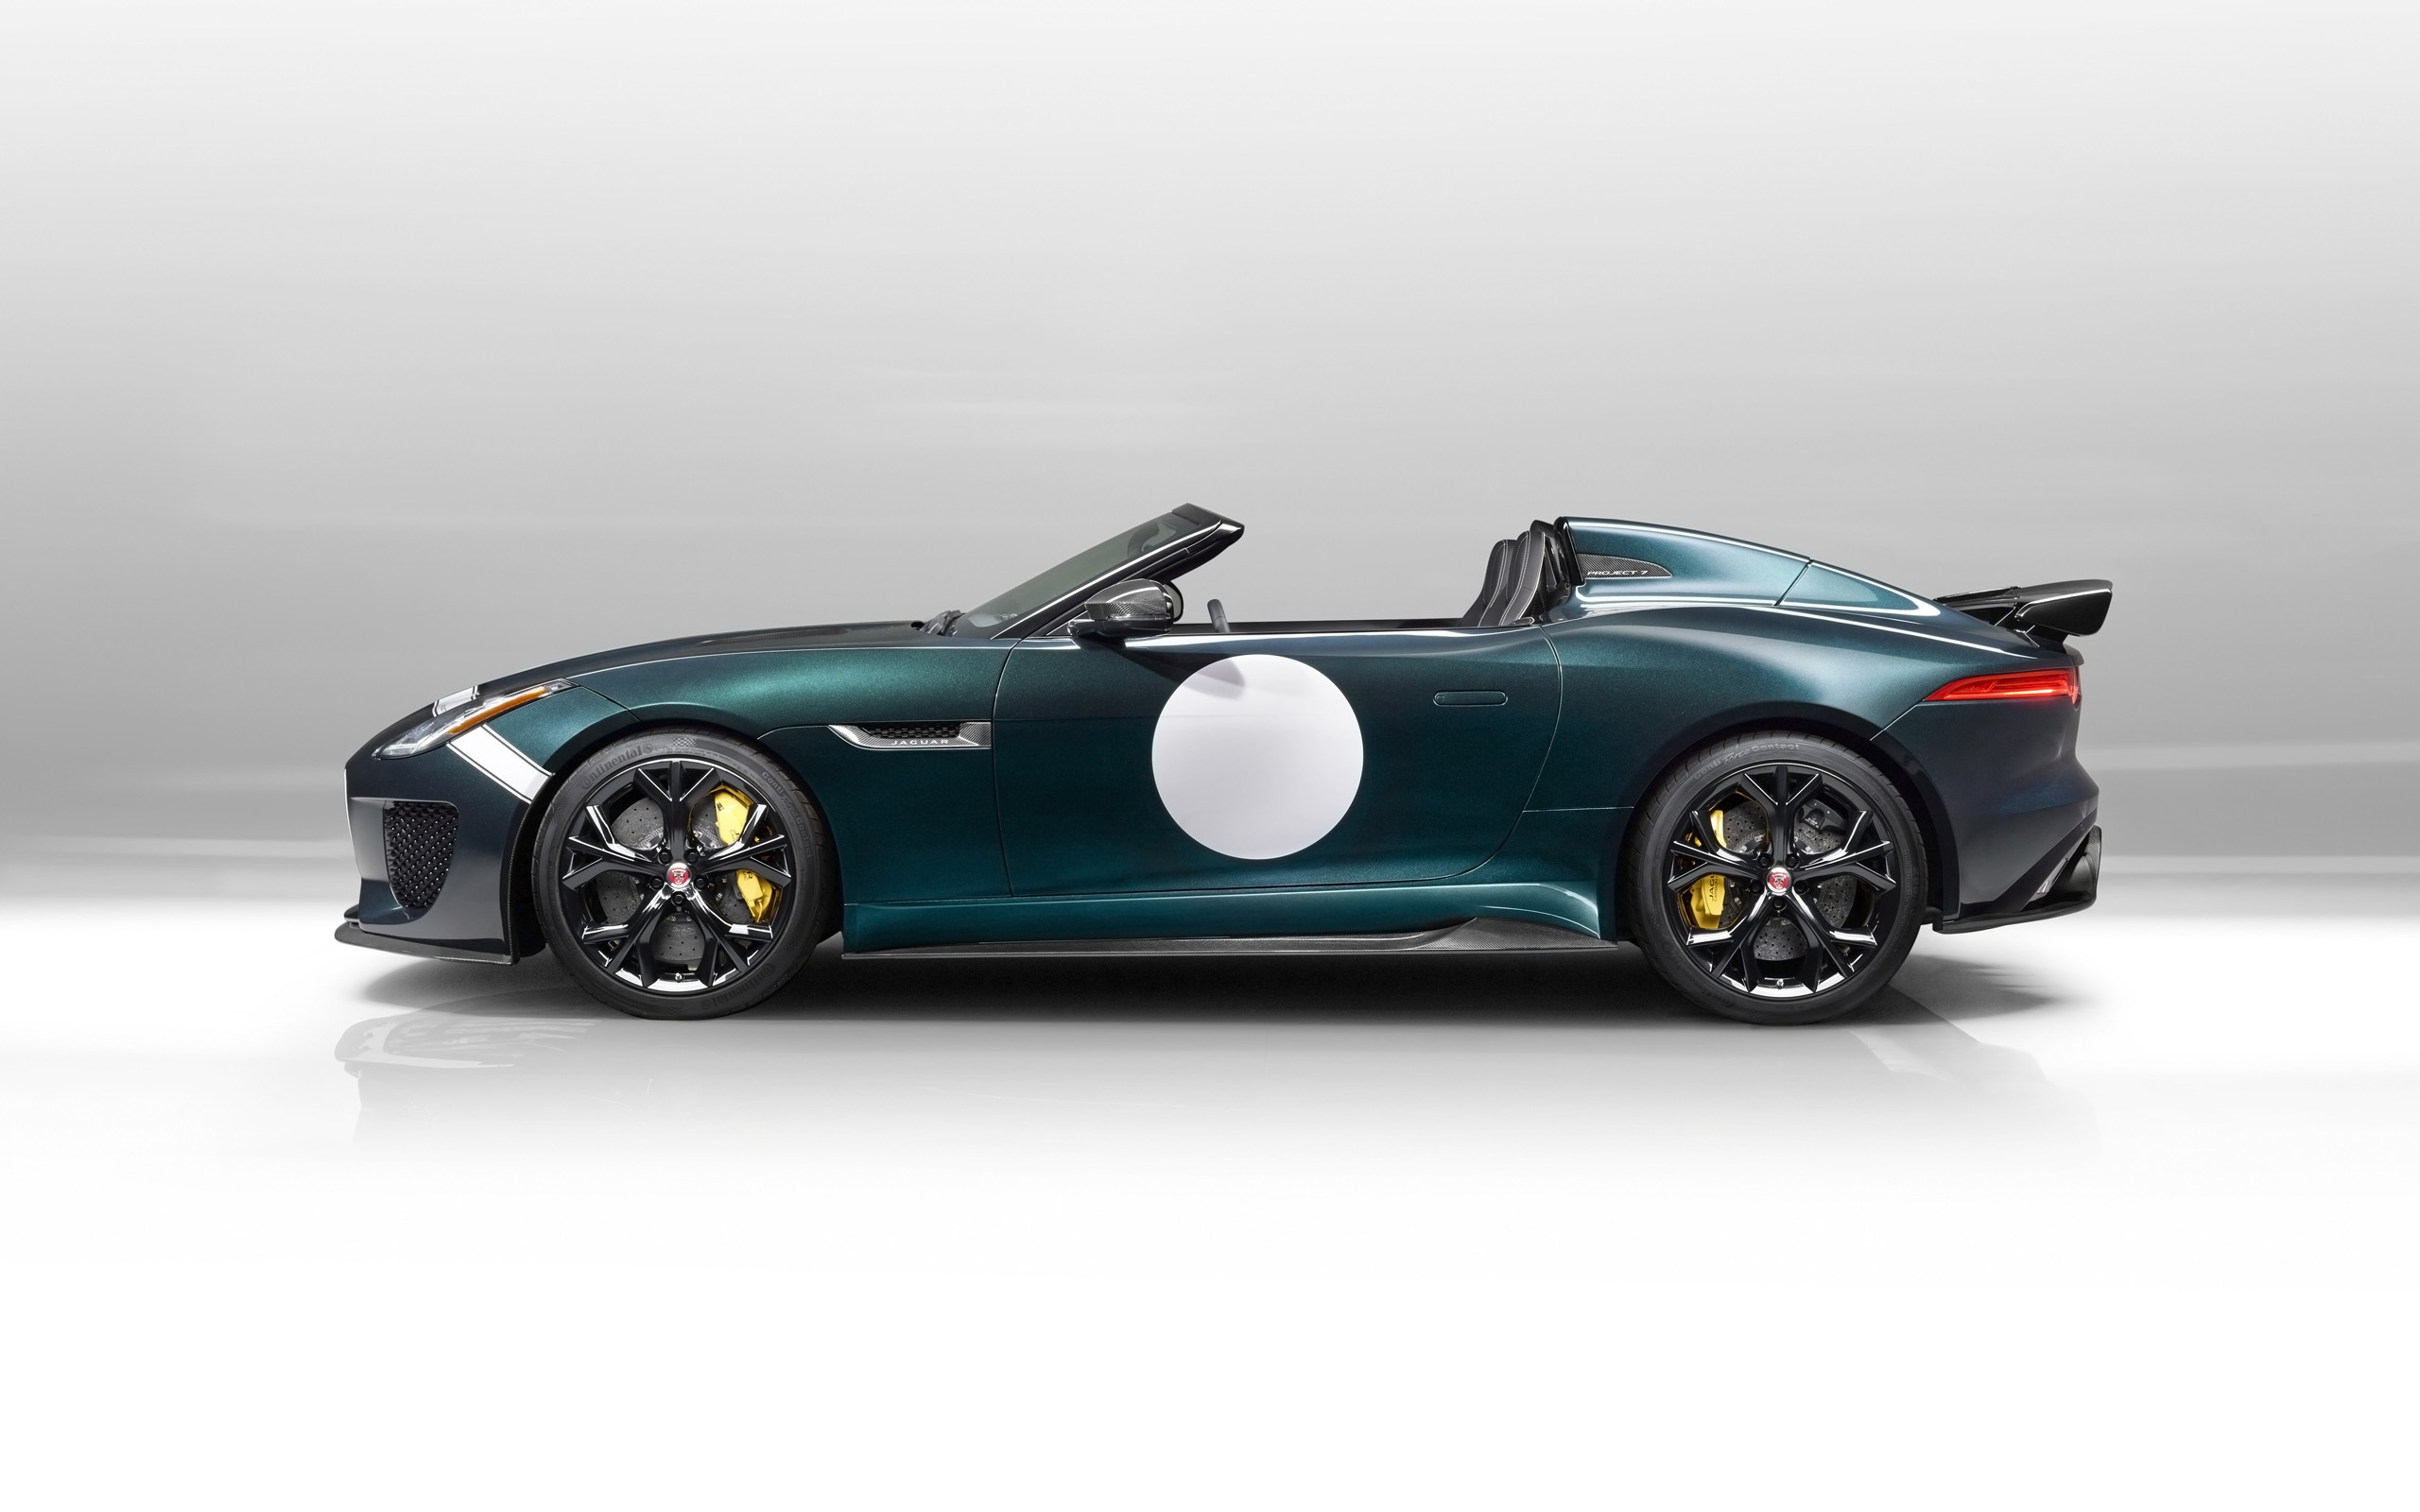 2015 Jaguar F Type Project 7 4 Wallpaper HD Car Wallpapers 2560x1600